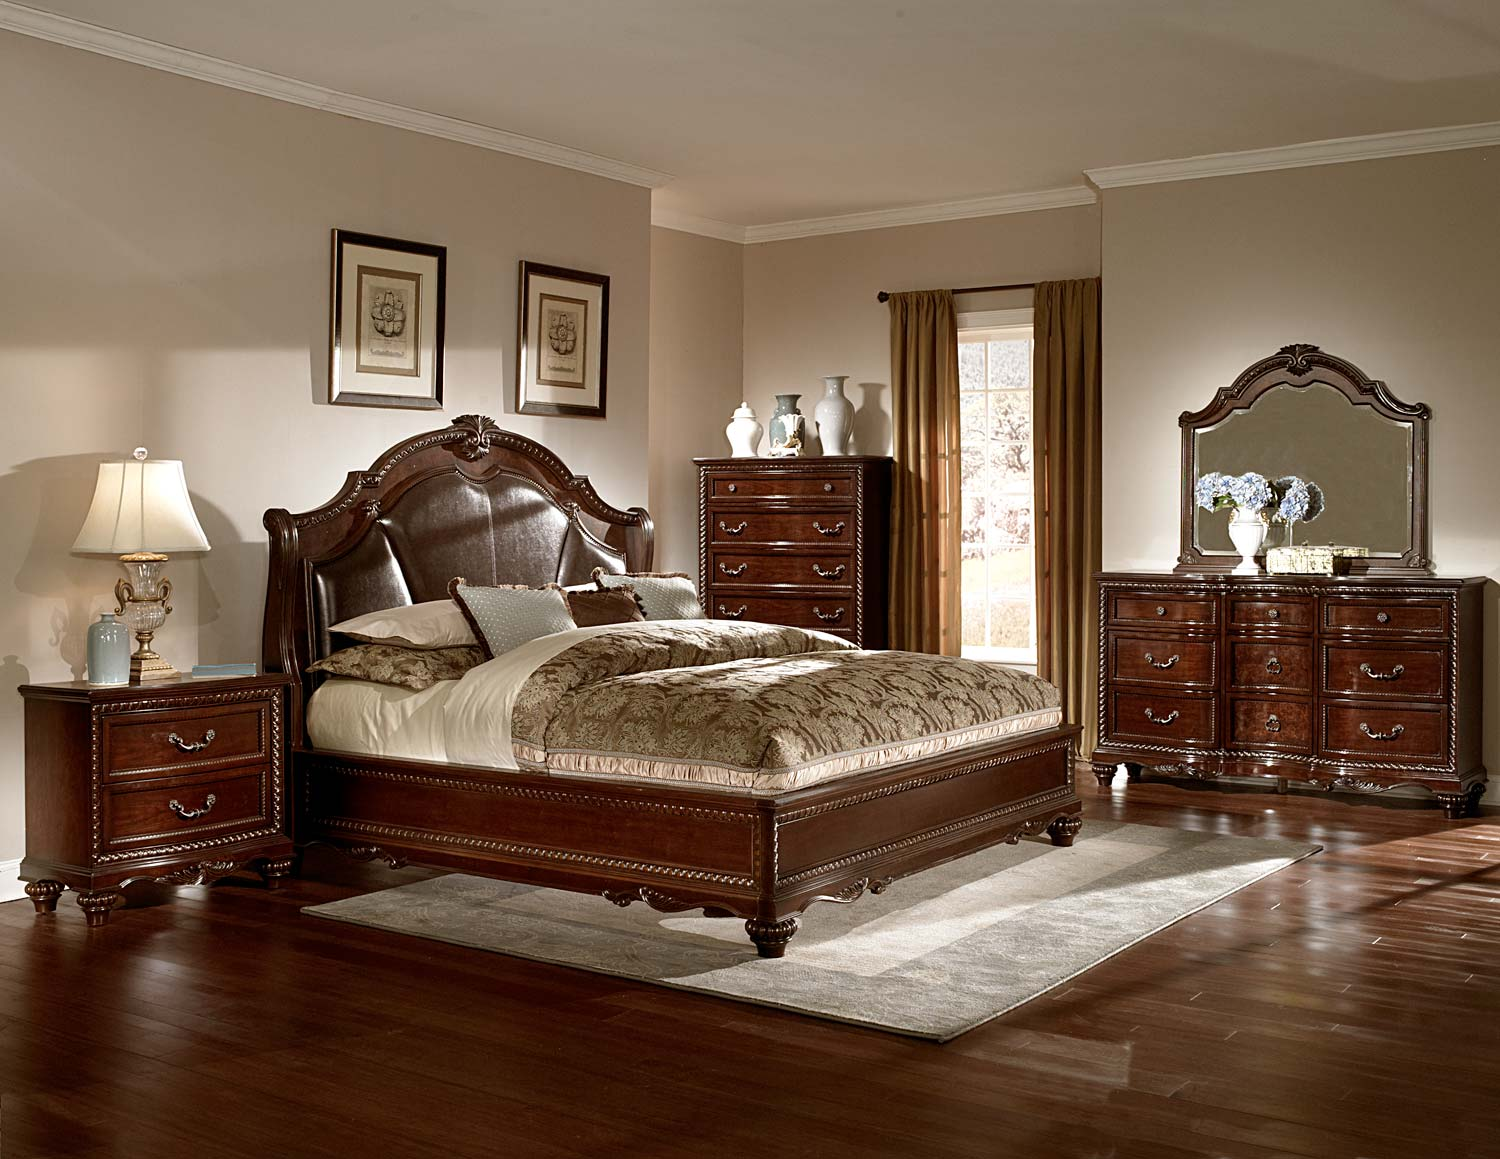 Homelegance hampstead court bedroom set cherry b2214 bed for Bedroom set with bed